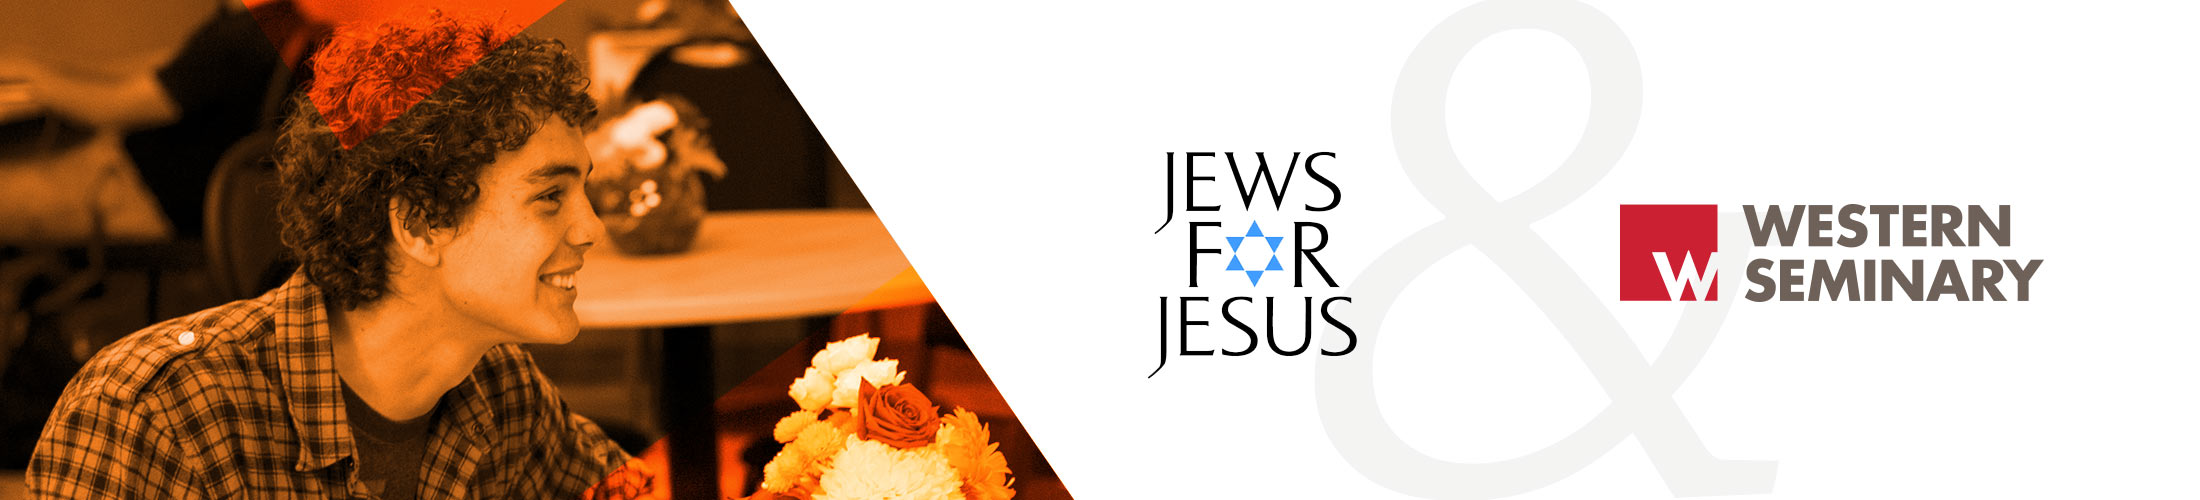 Admissions-Jews-for-Jesus-Partnership